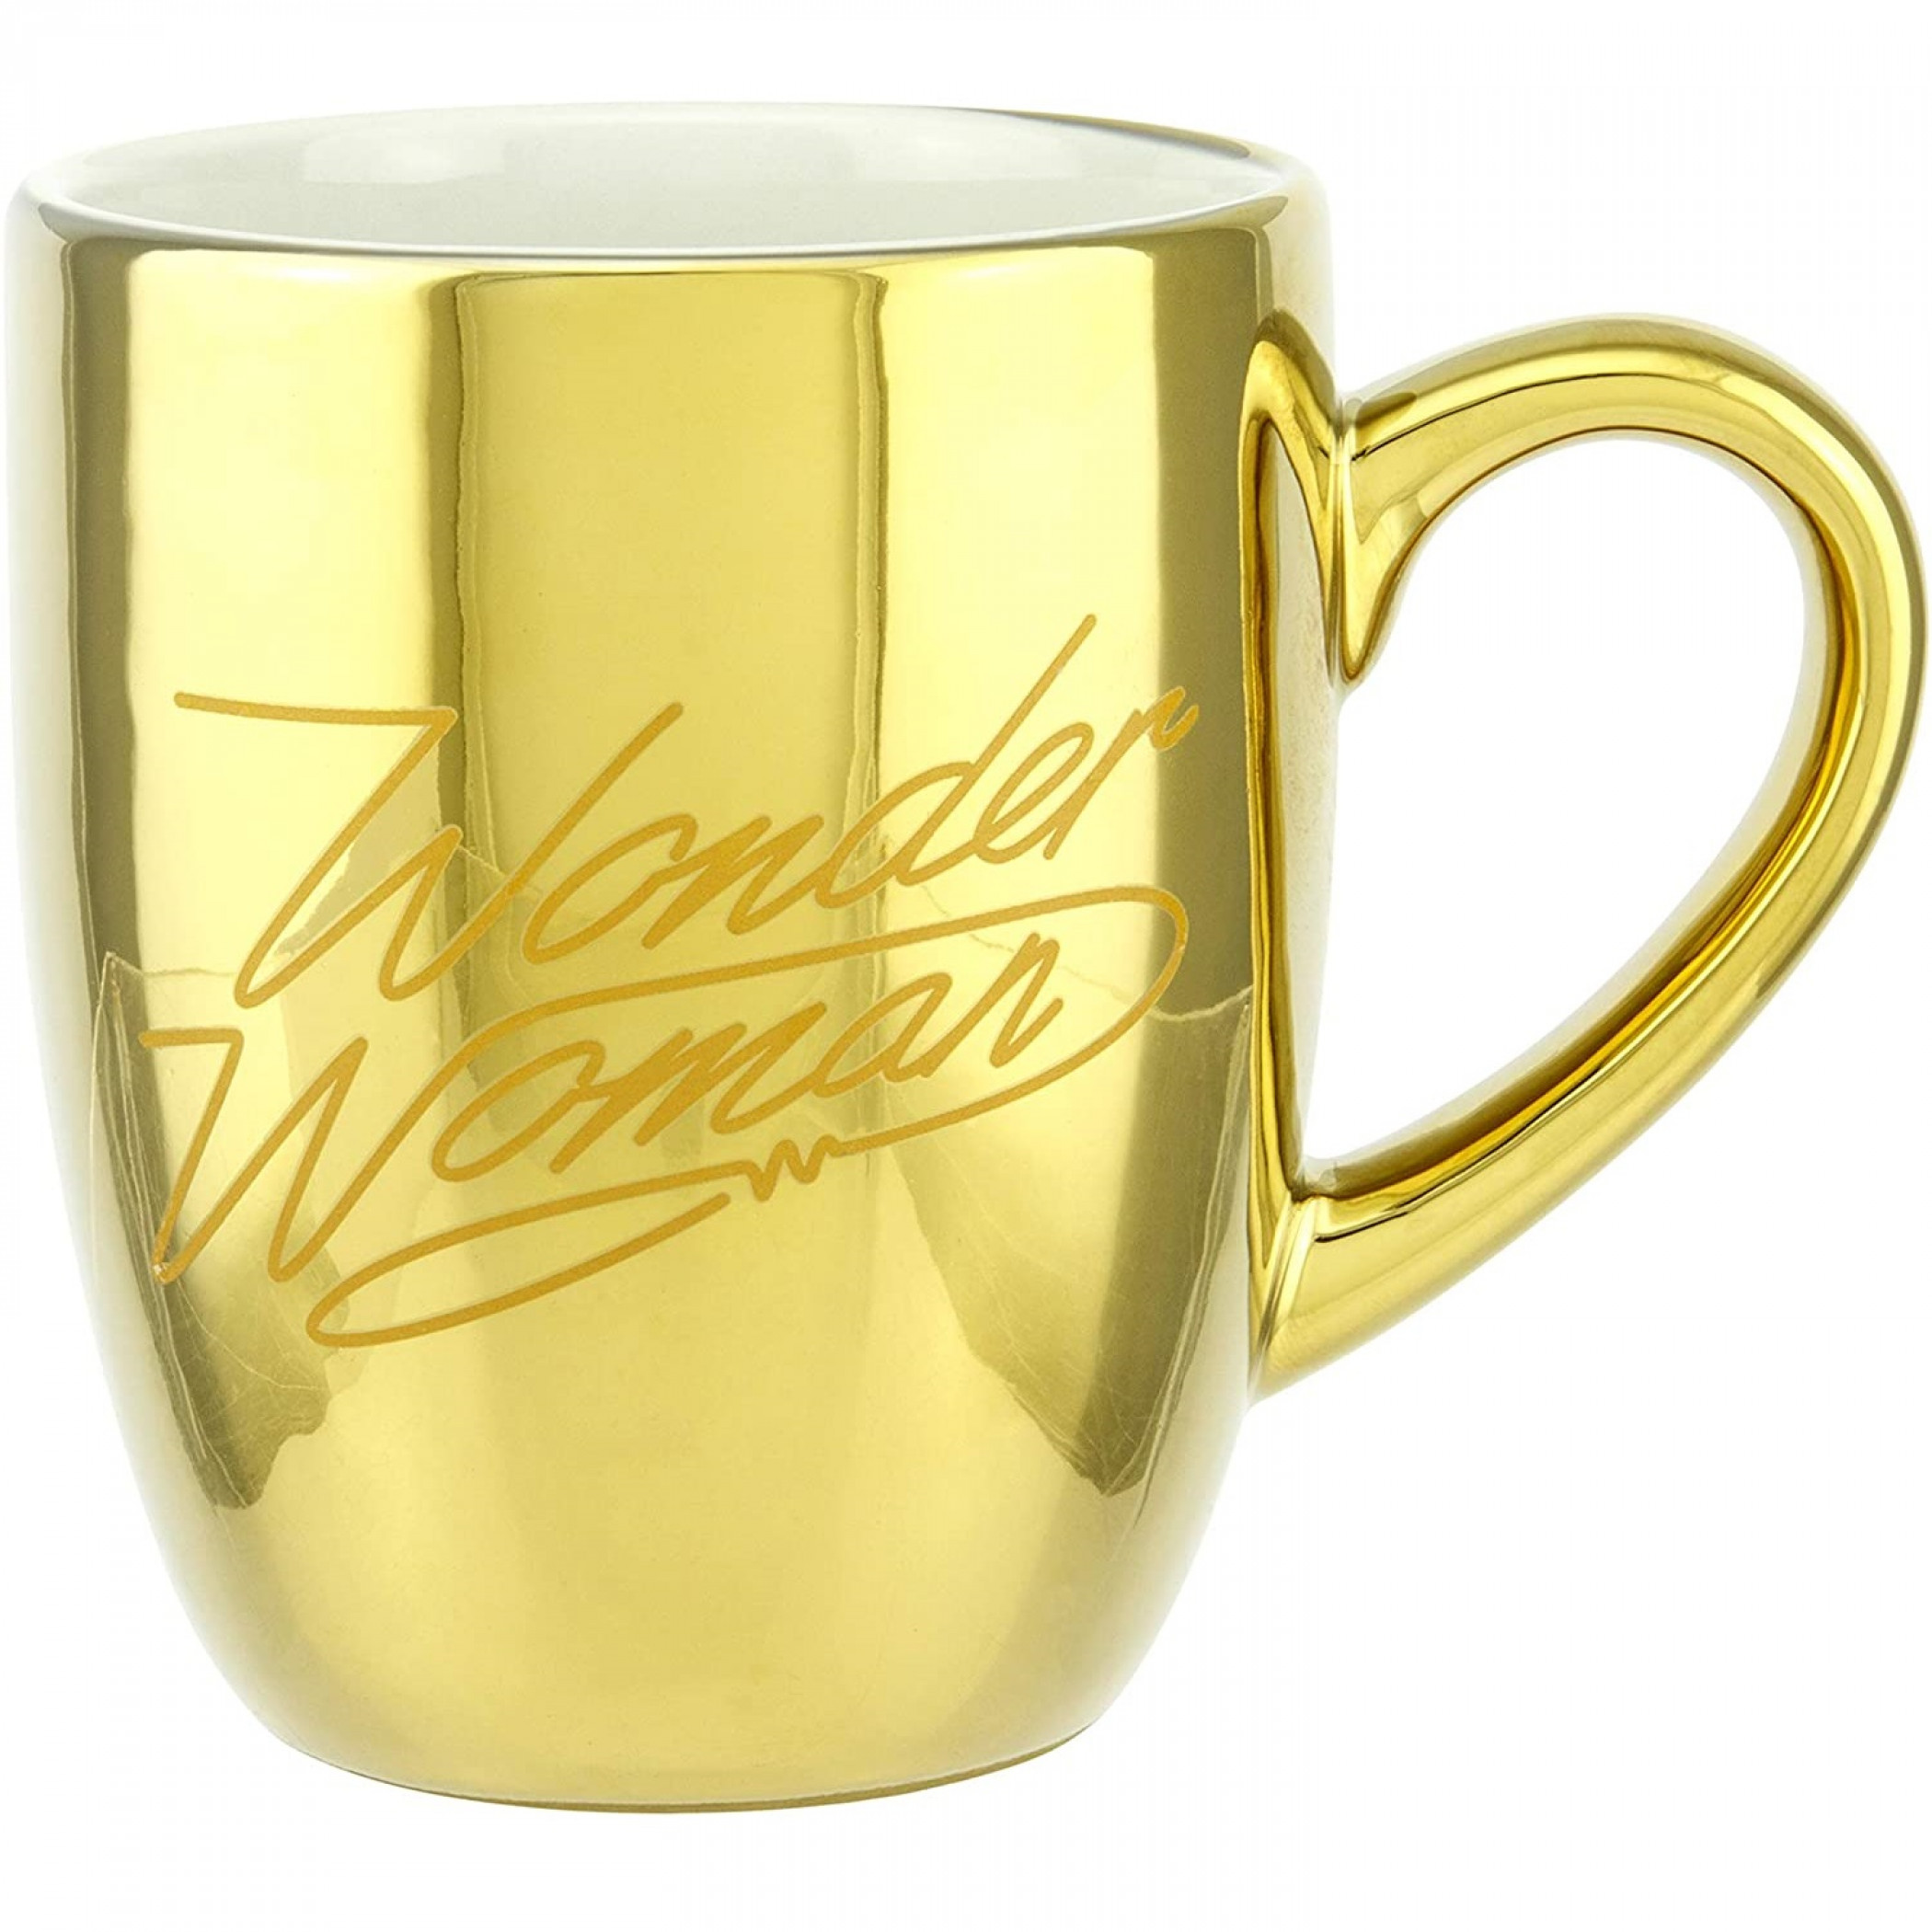 Wonder Woman Gold 1984 Logo Mug